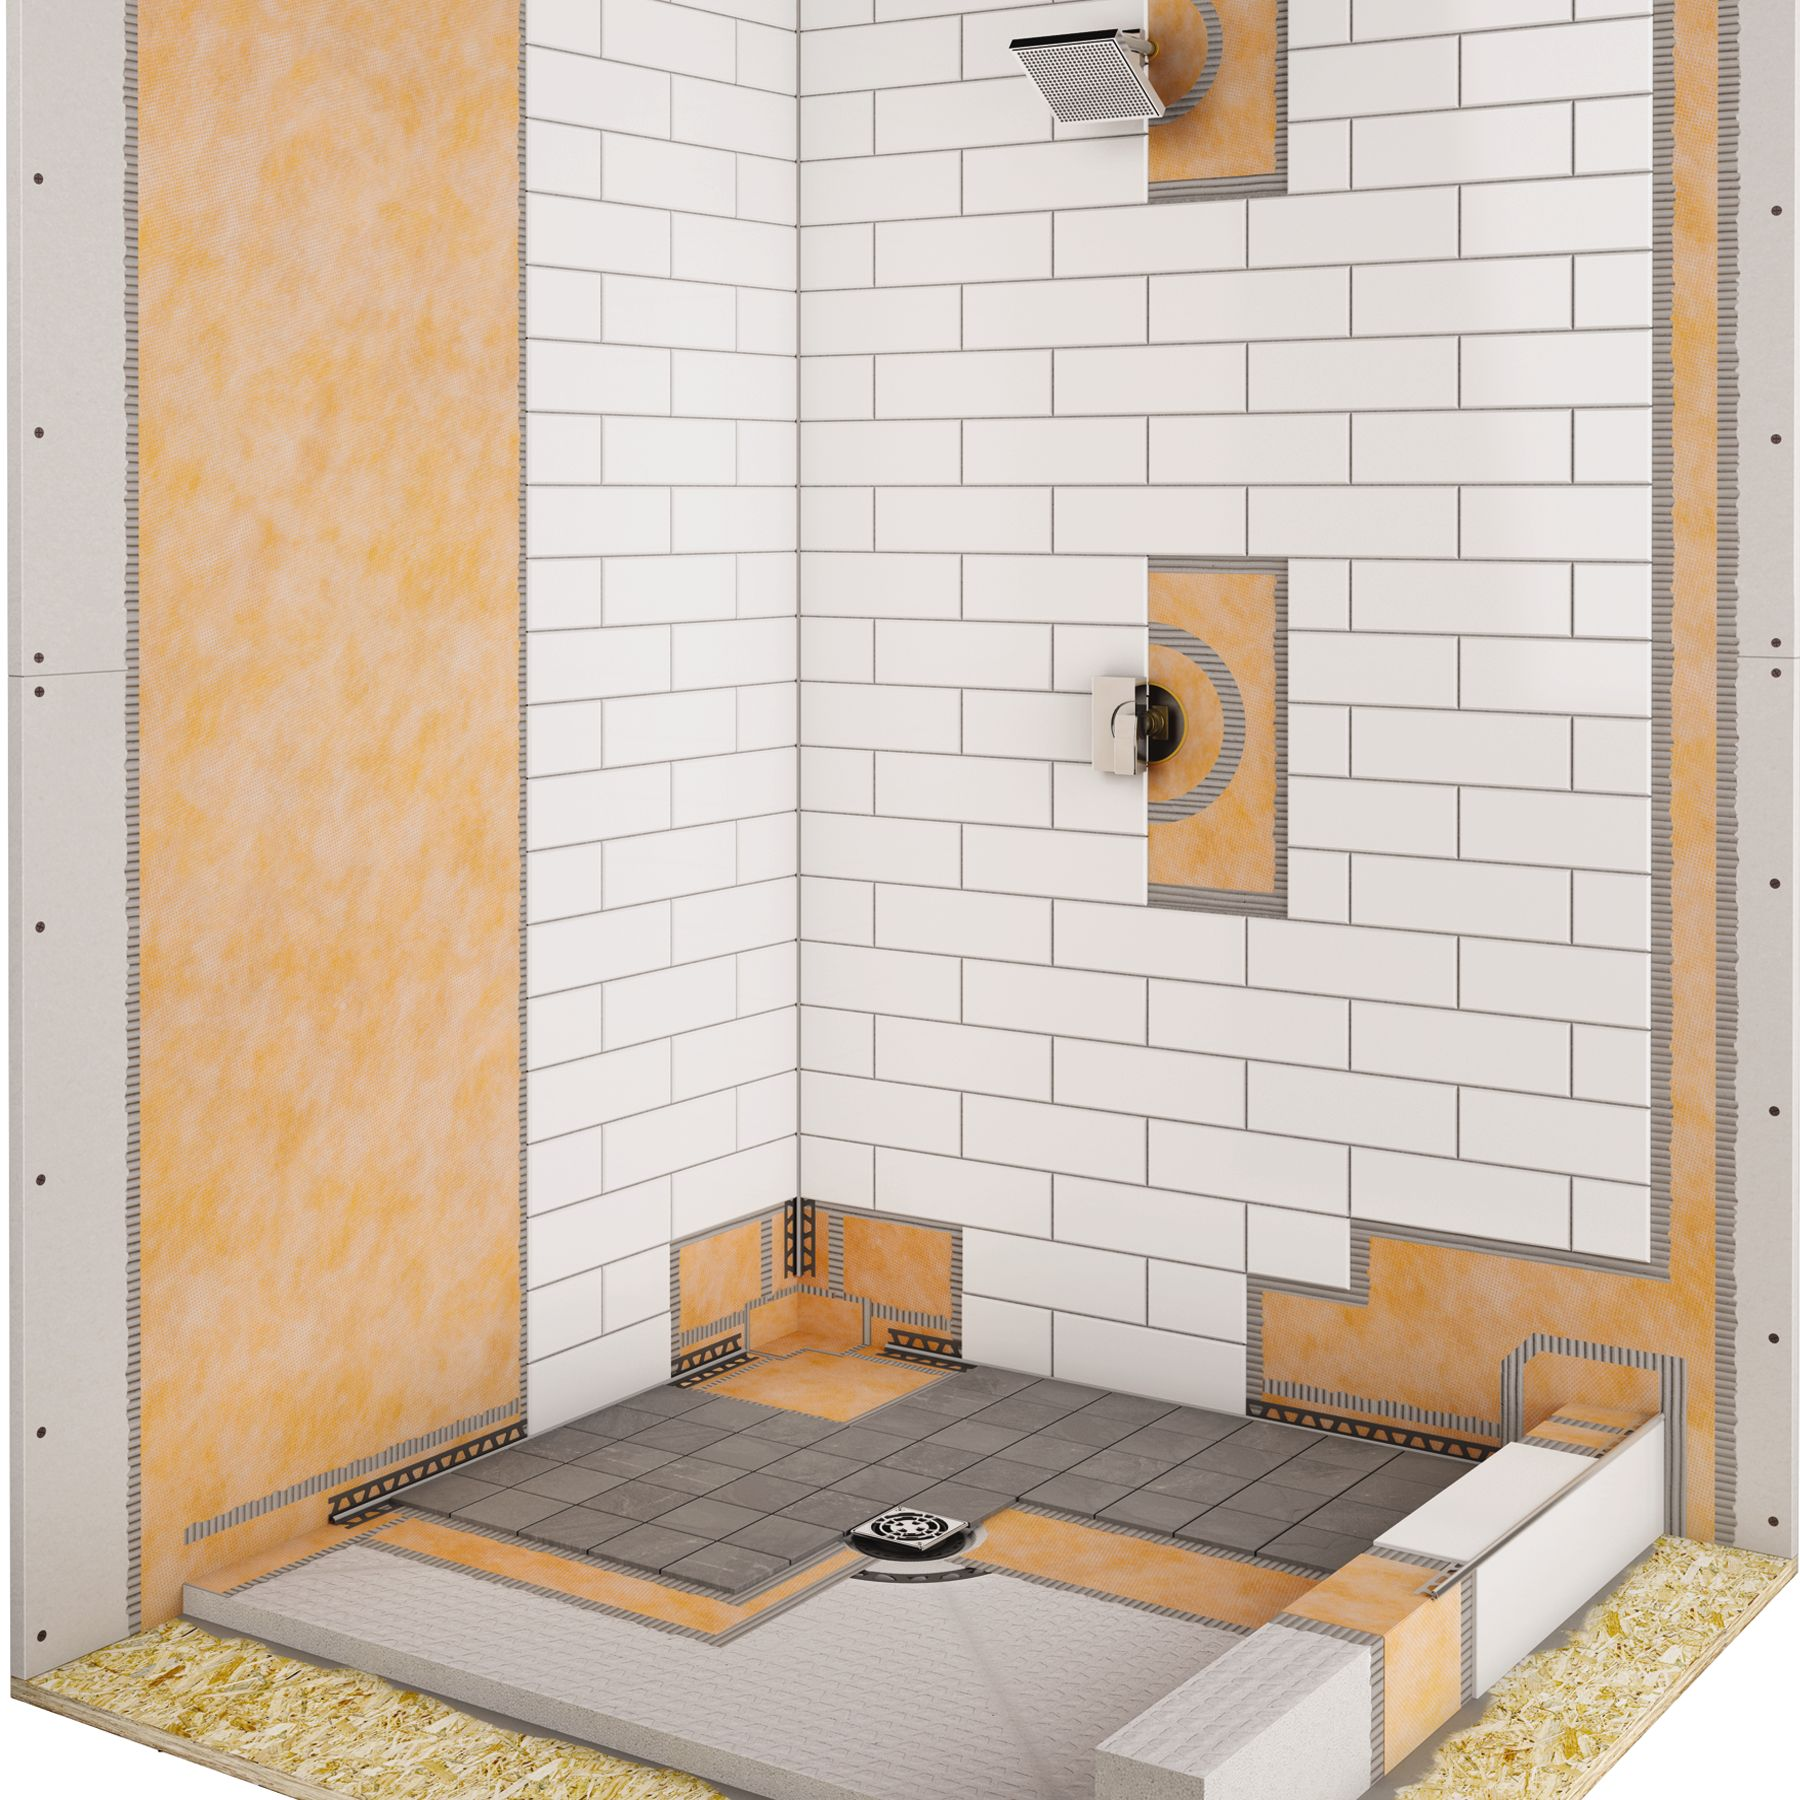 Kerdi shower kit marble trend marble granite tiles toronto ontario marble trend - Walk in shower base kit ...